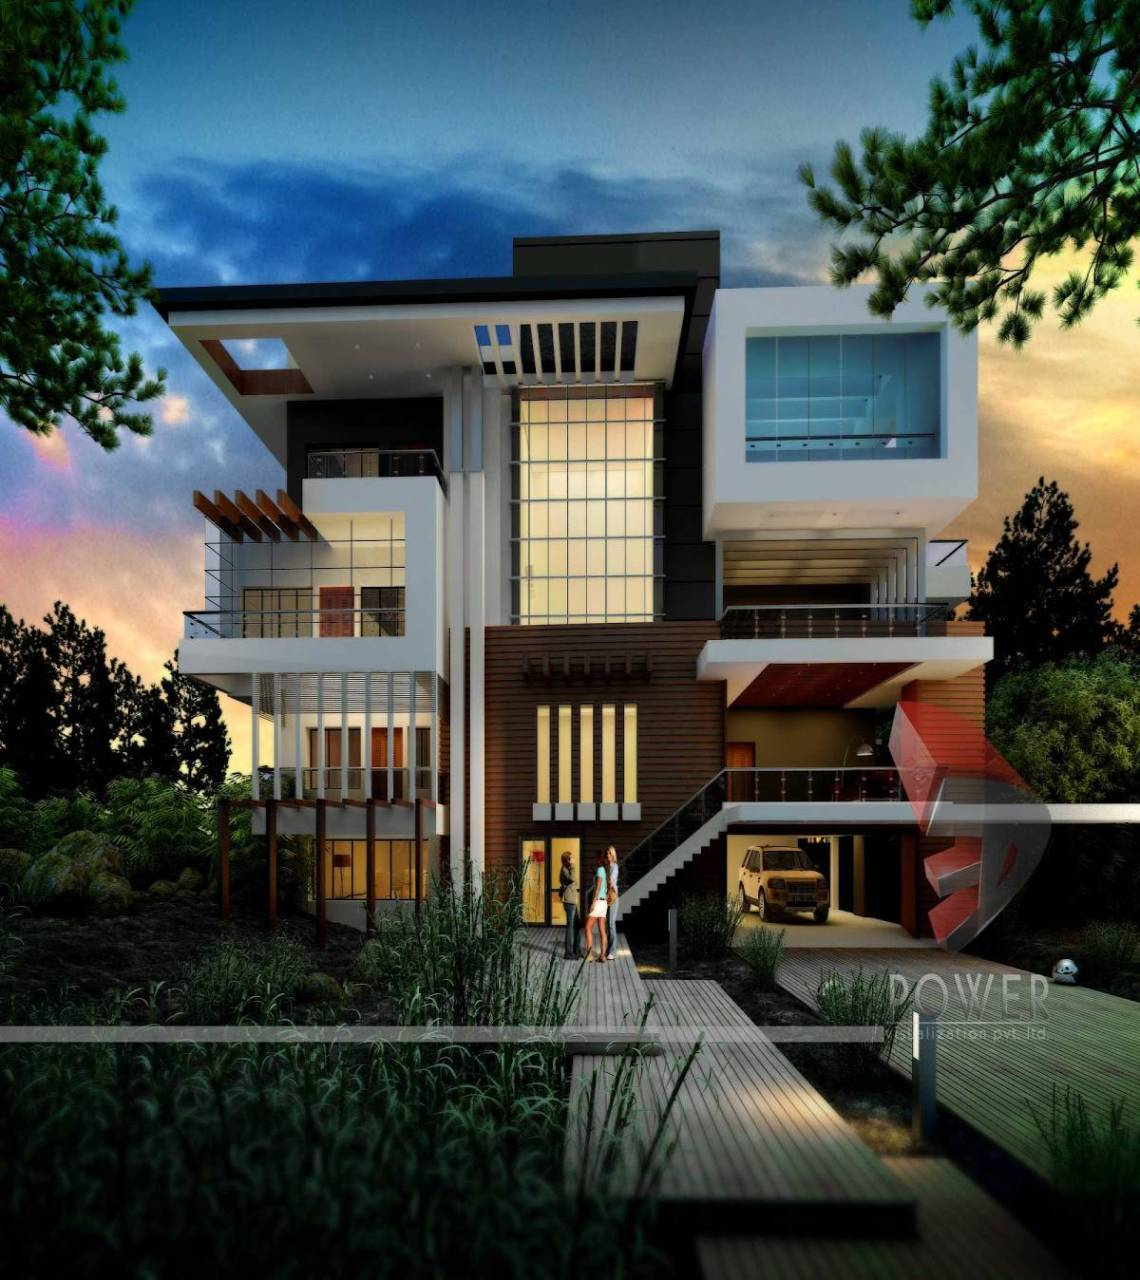 67 Beautiful Modern Home Design Ideas In One Photo Gallery ...